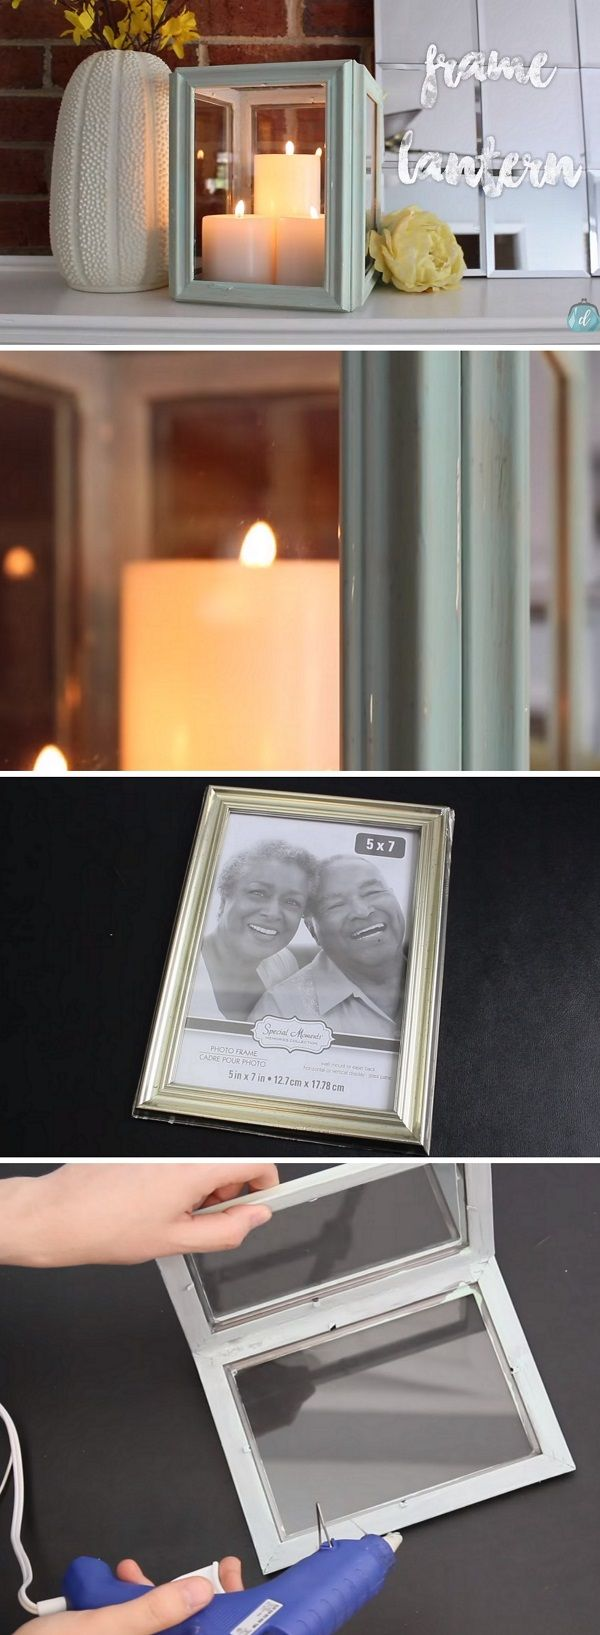 Check out the tutorial on how to make a #DIY lantern from picture frames #homedecor #dollarstore @istandarddesign